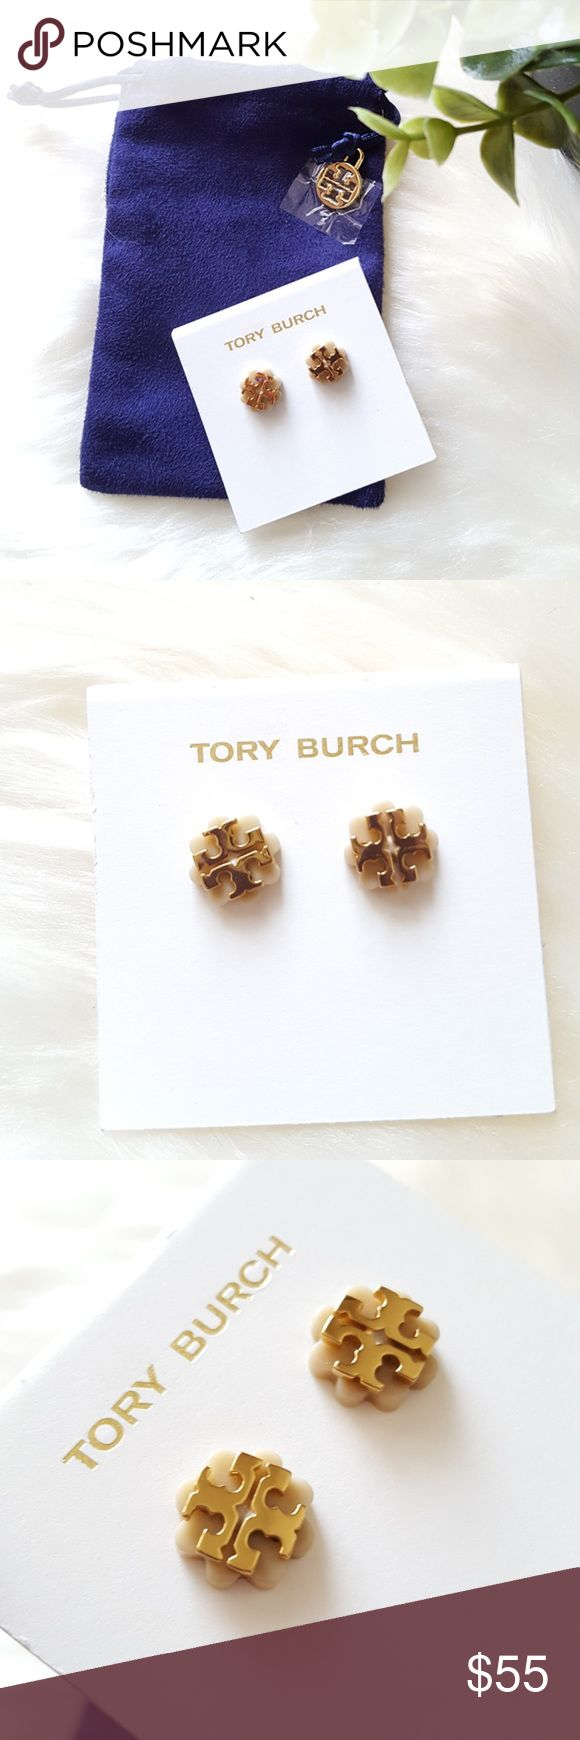 """Tory Burch Logo Flower Resin Stud Earrings Brand New with Tags - 100% Authentic   Stud earrings by Tory Burch.  Resin flowers detailed with signature double-T logo.  16-karat yellow gold plated brass.  Post backs for pierced ears.  12mm (1/2"""") diameter. Tory Burch Jewelry Earrings"""